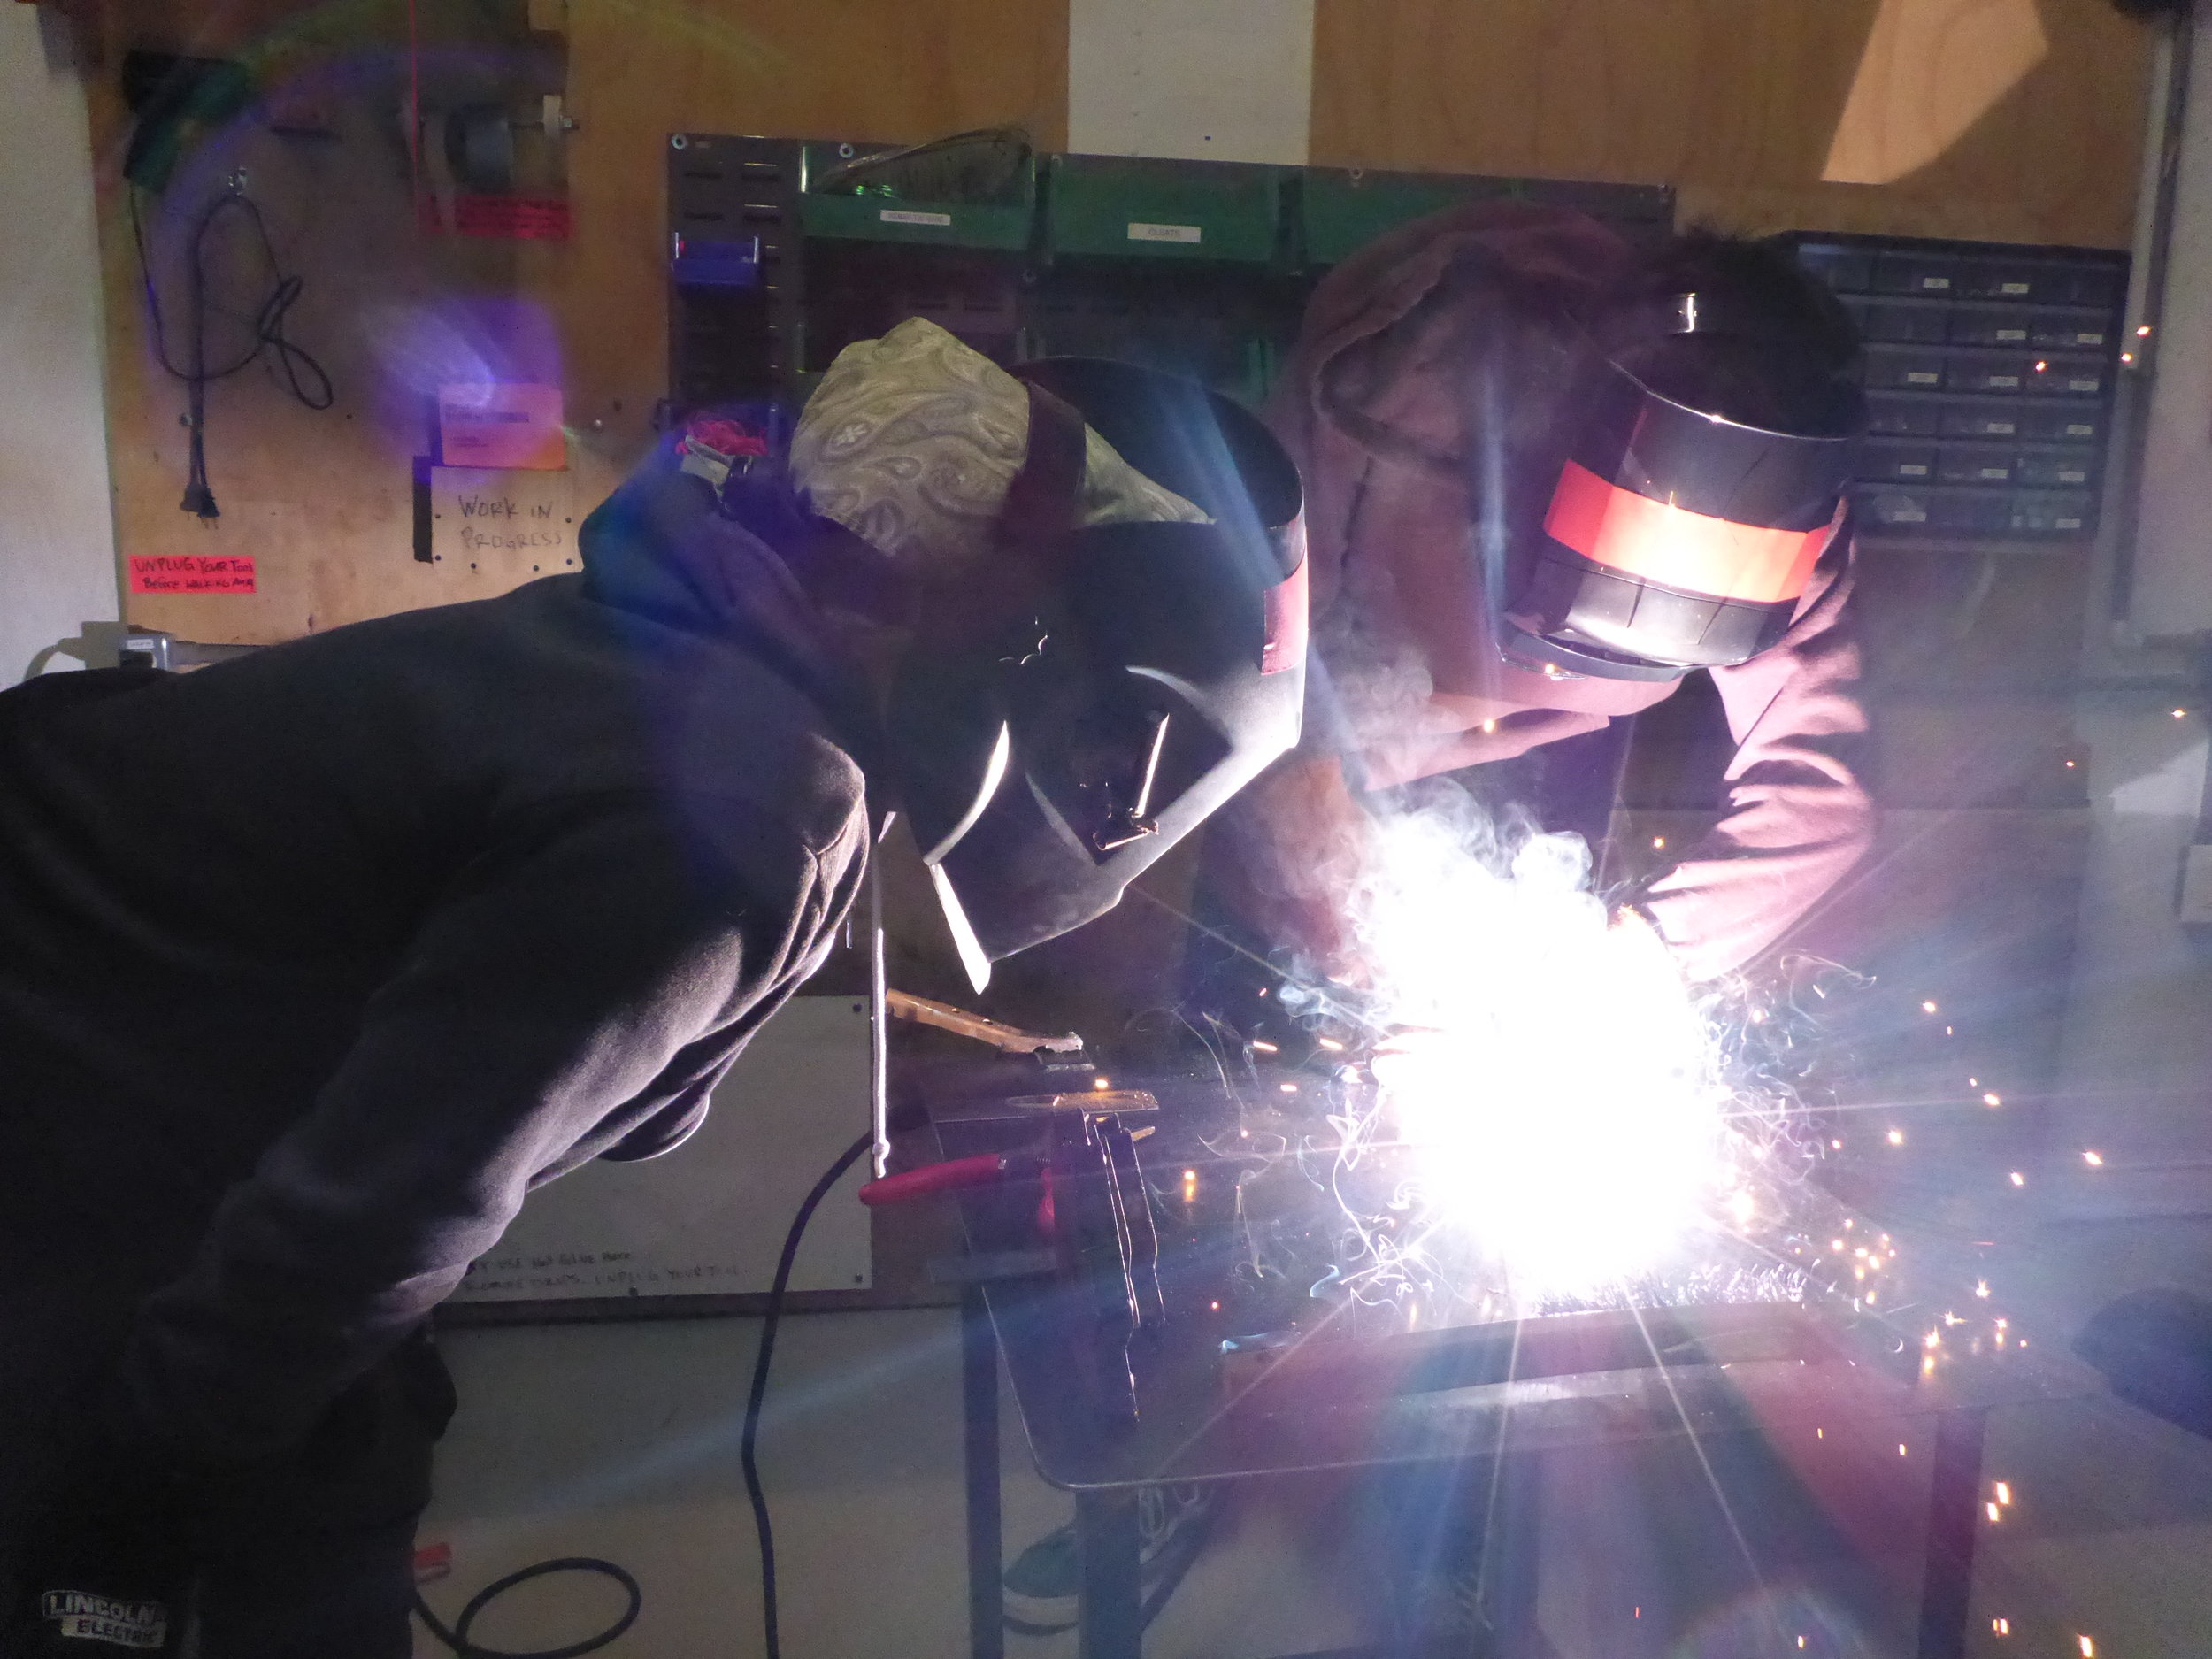 Lee getting started welding on his practice plate. I love the range of ages in welding workshops too. Something this hard is a great equalizer; both the 8 year olds and the 14 year olds will have great advice to give each other.